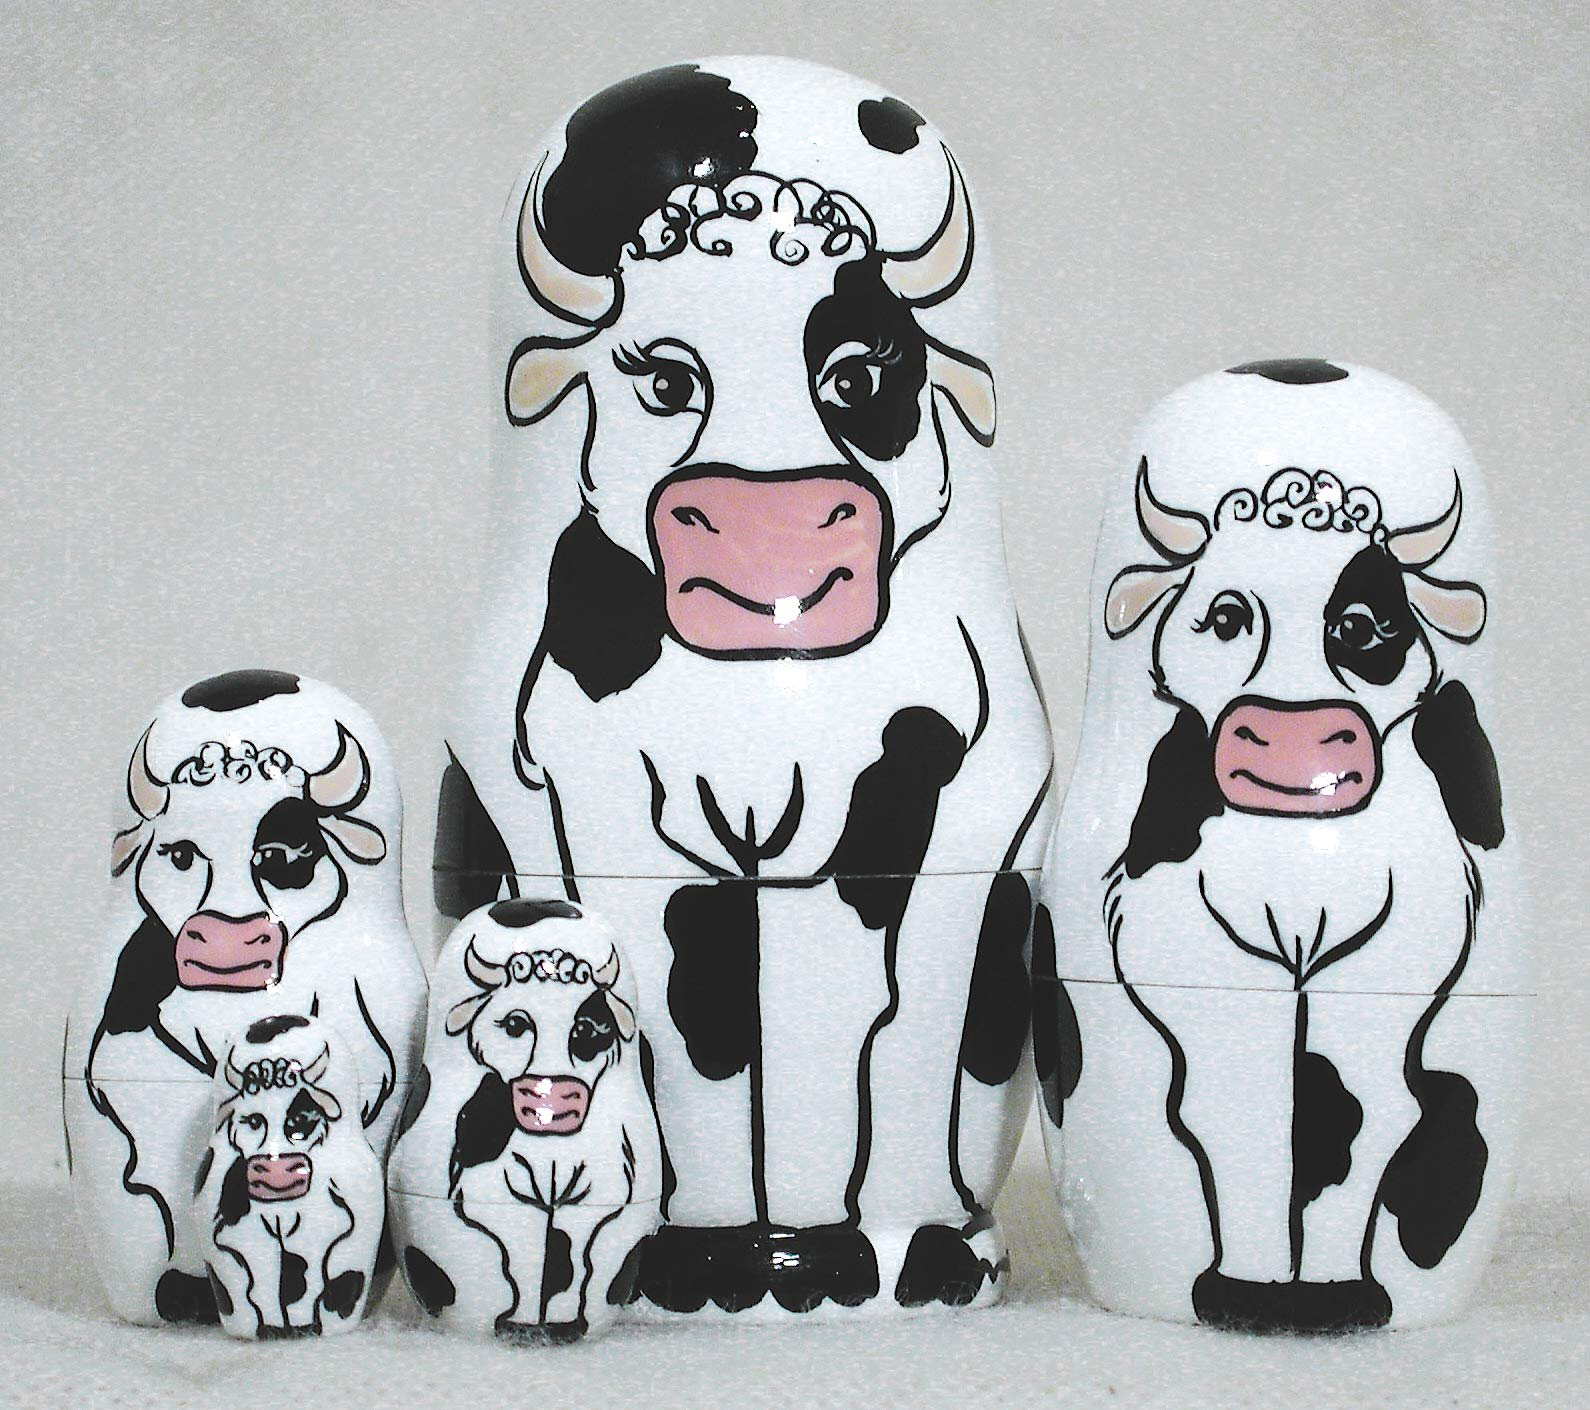 Holstein Cow 5 Piece Russian Wood Nesting Doll Matryoshka Stacking Dolls Russia by Golden Cockerel